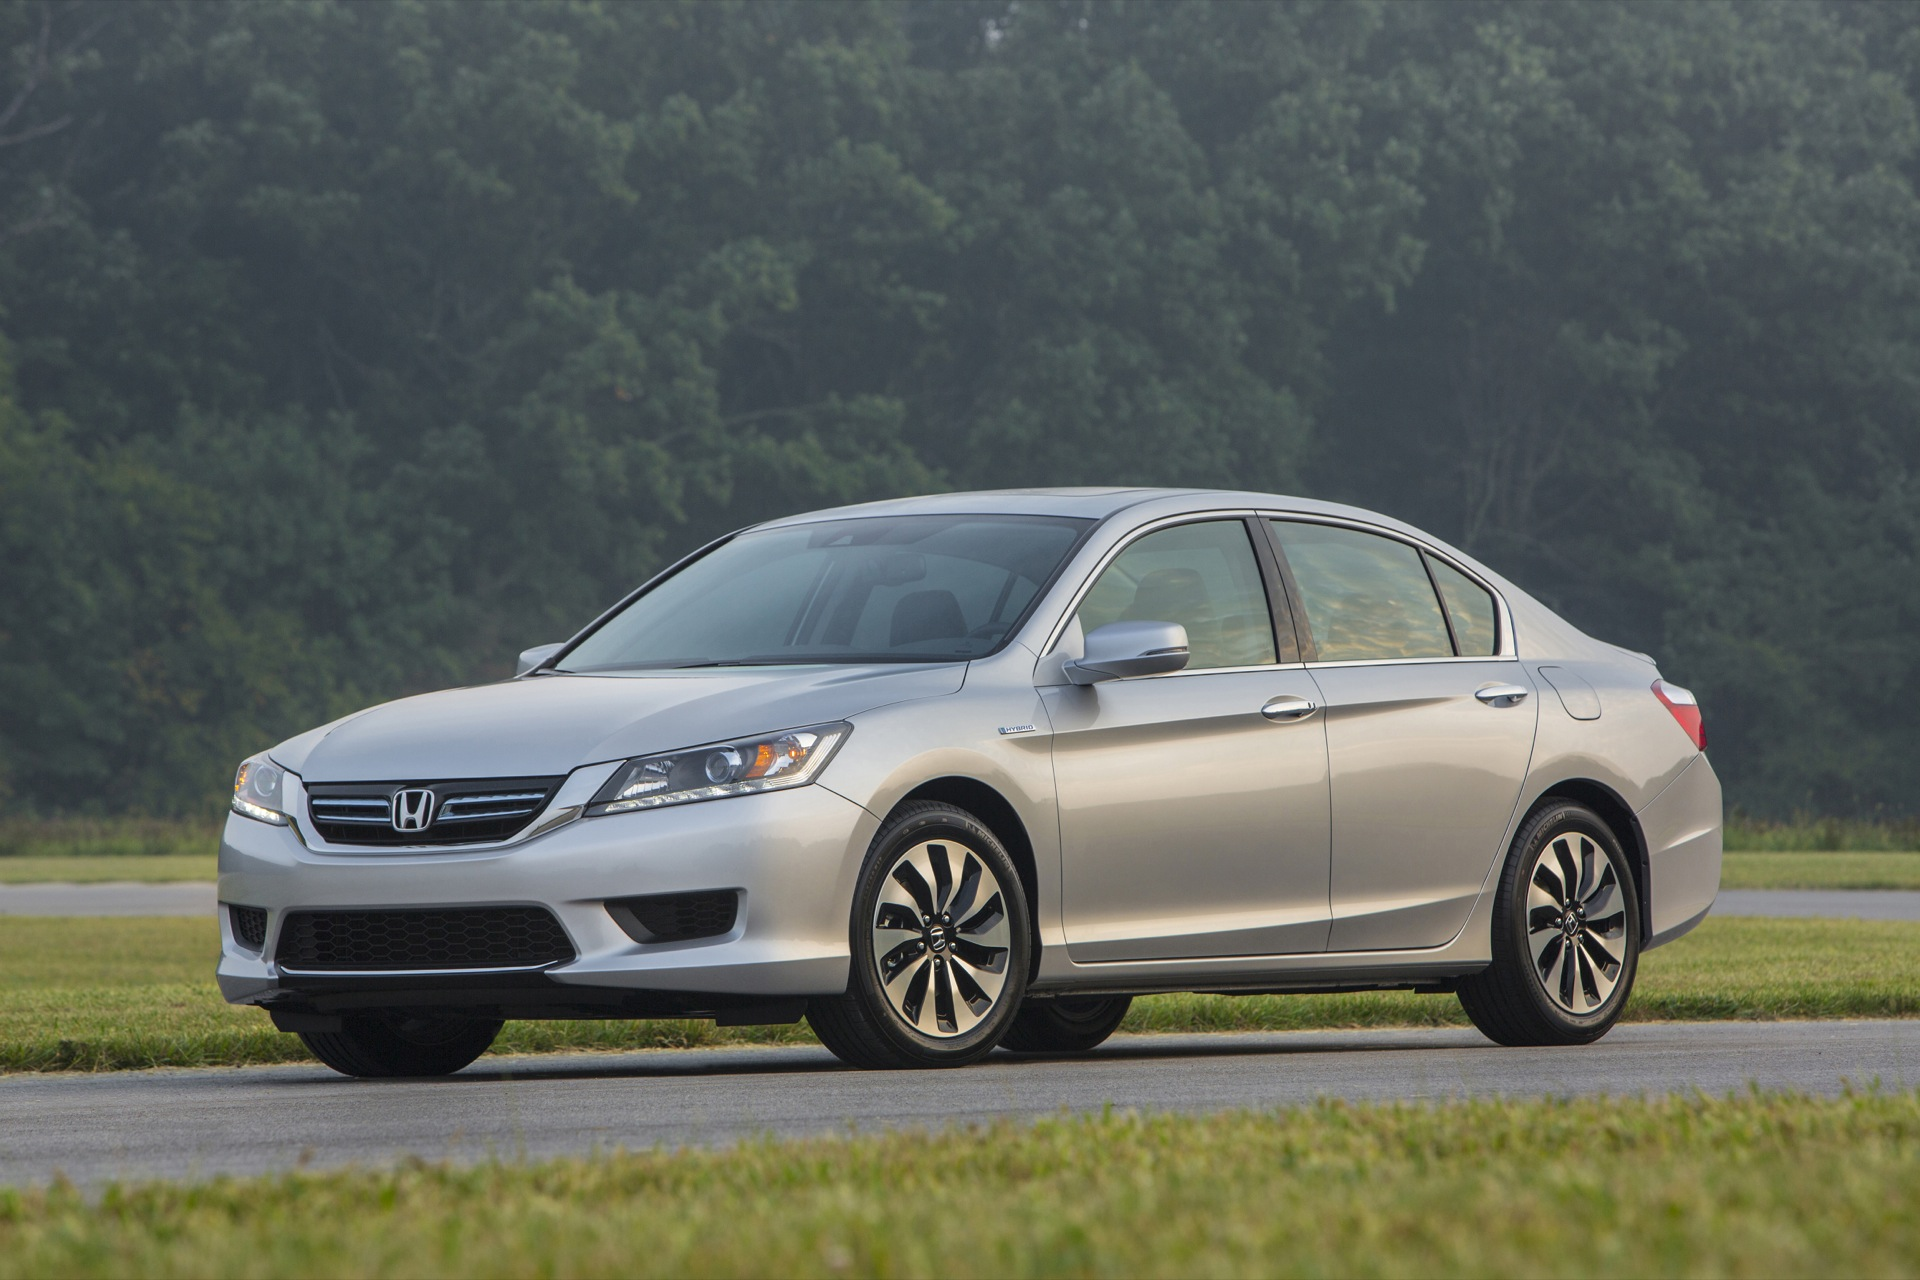 honda options buy price sport pricing and accord sedan